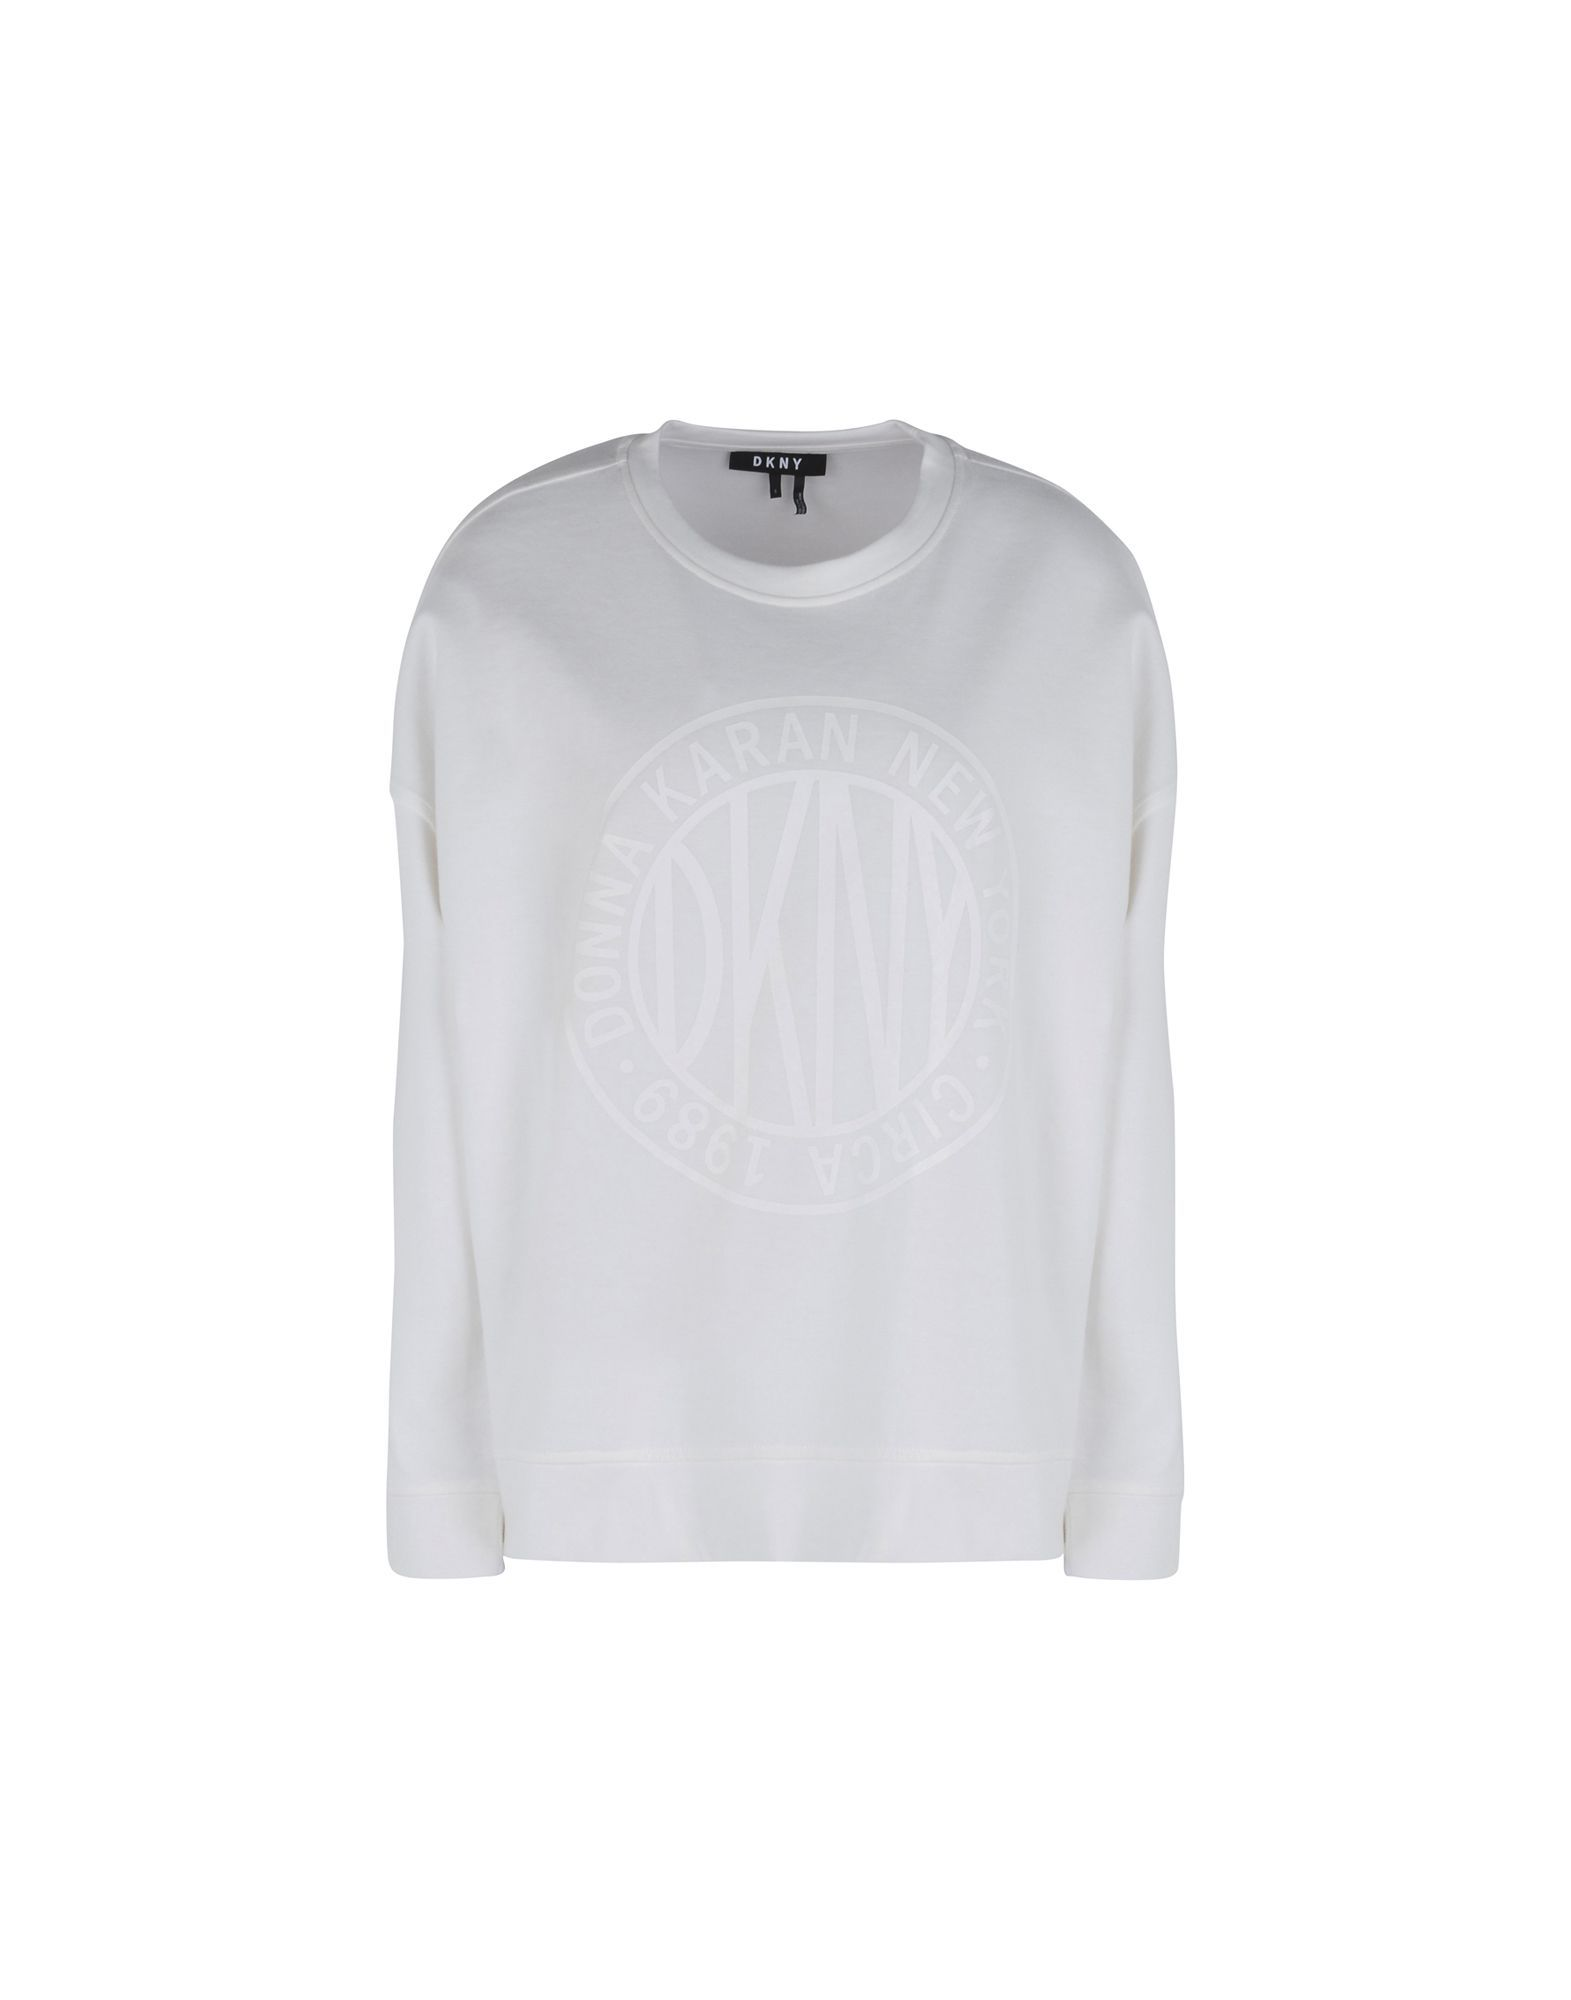 TOPWEAR Dkny White Woman Cotton